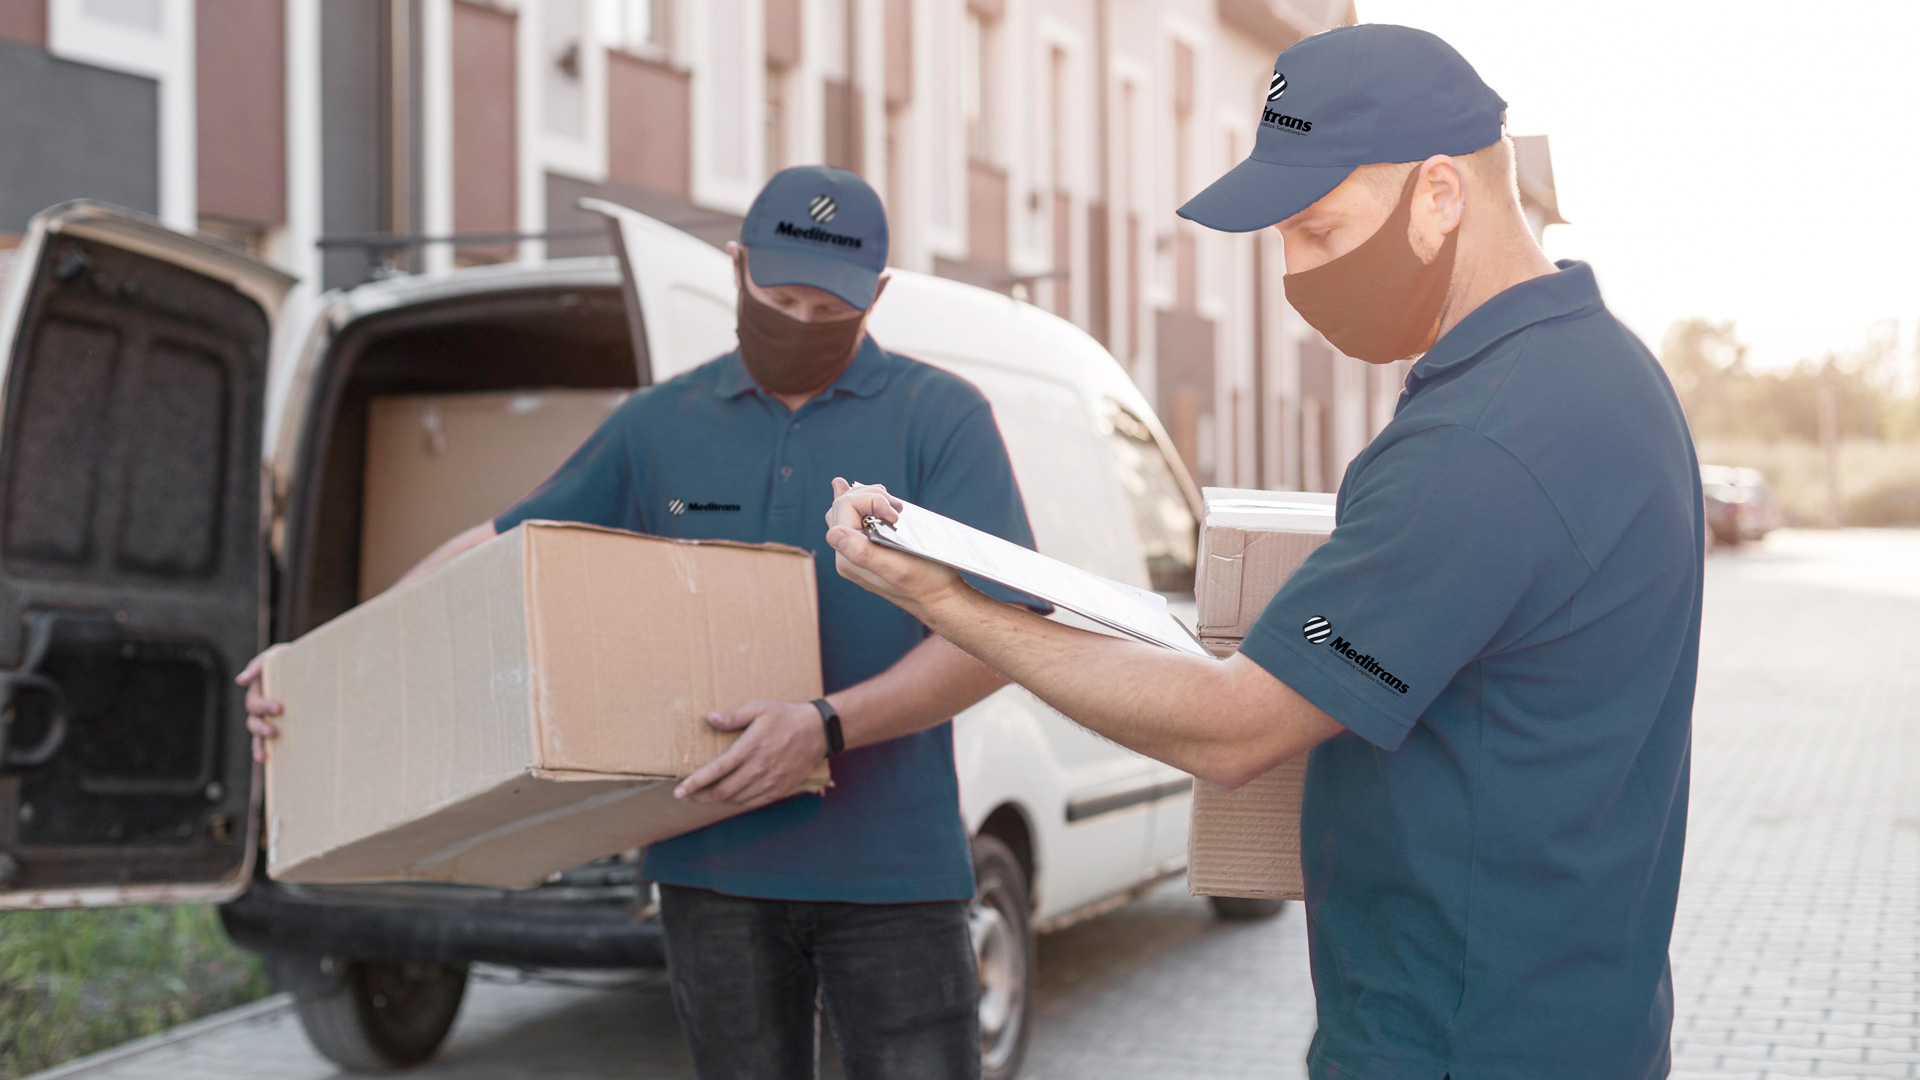 Messaggerie, transportation and delivery of packages and parcels